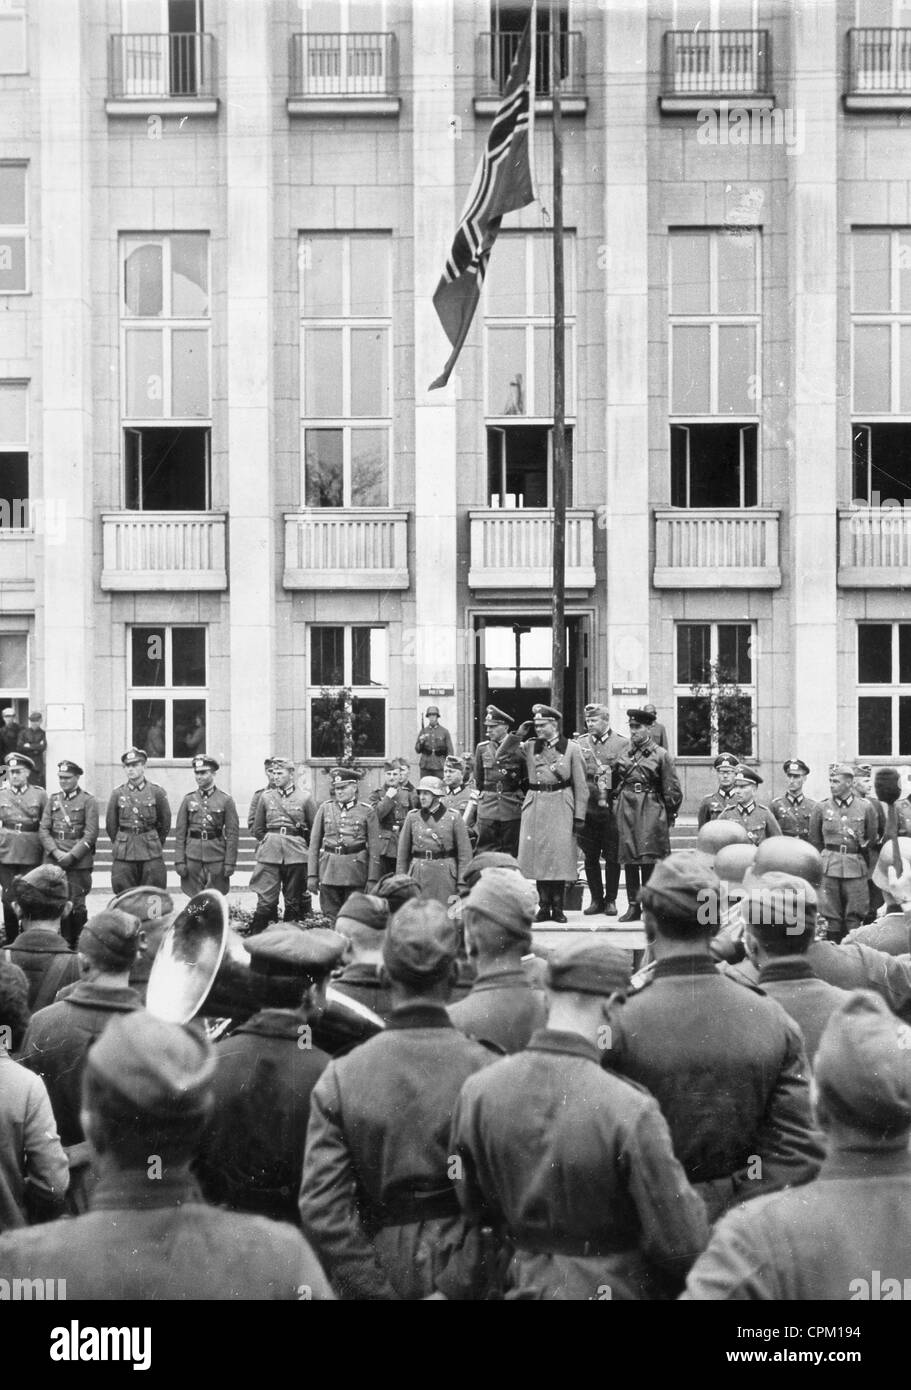 Parade at the withdrawal of the Germans from Brest-Litovsk, 1939 - Stock Image